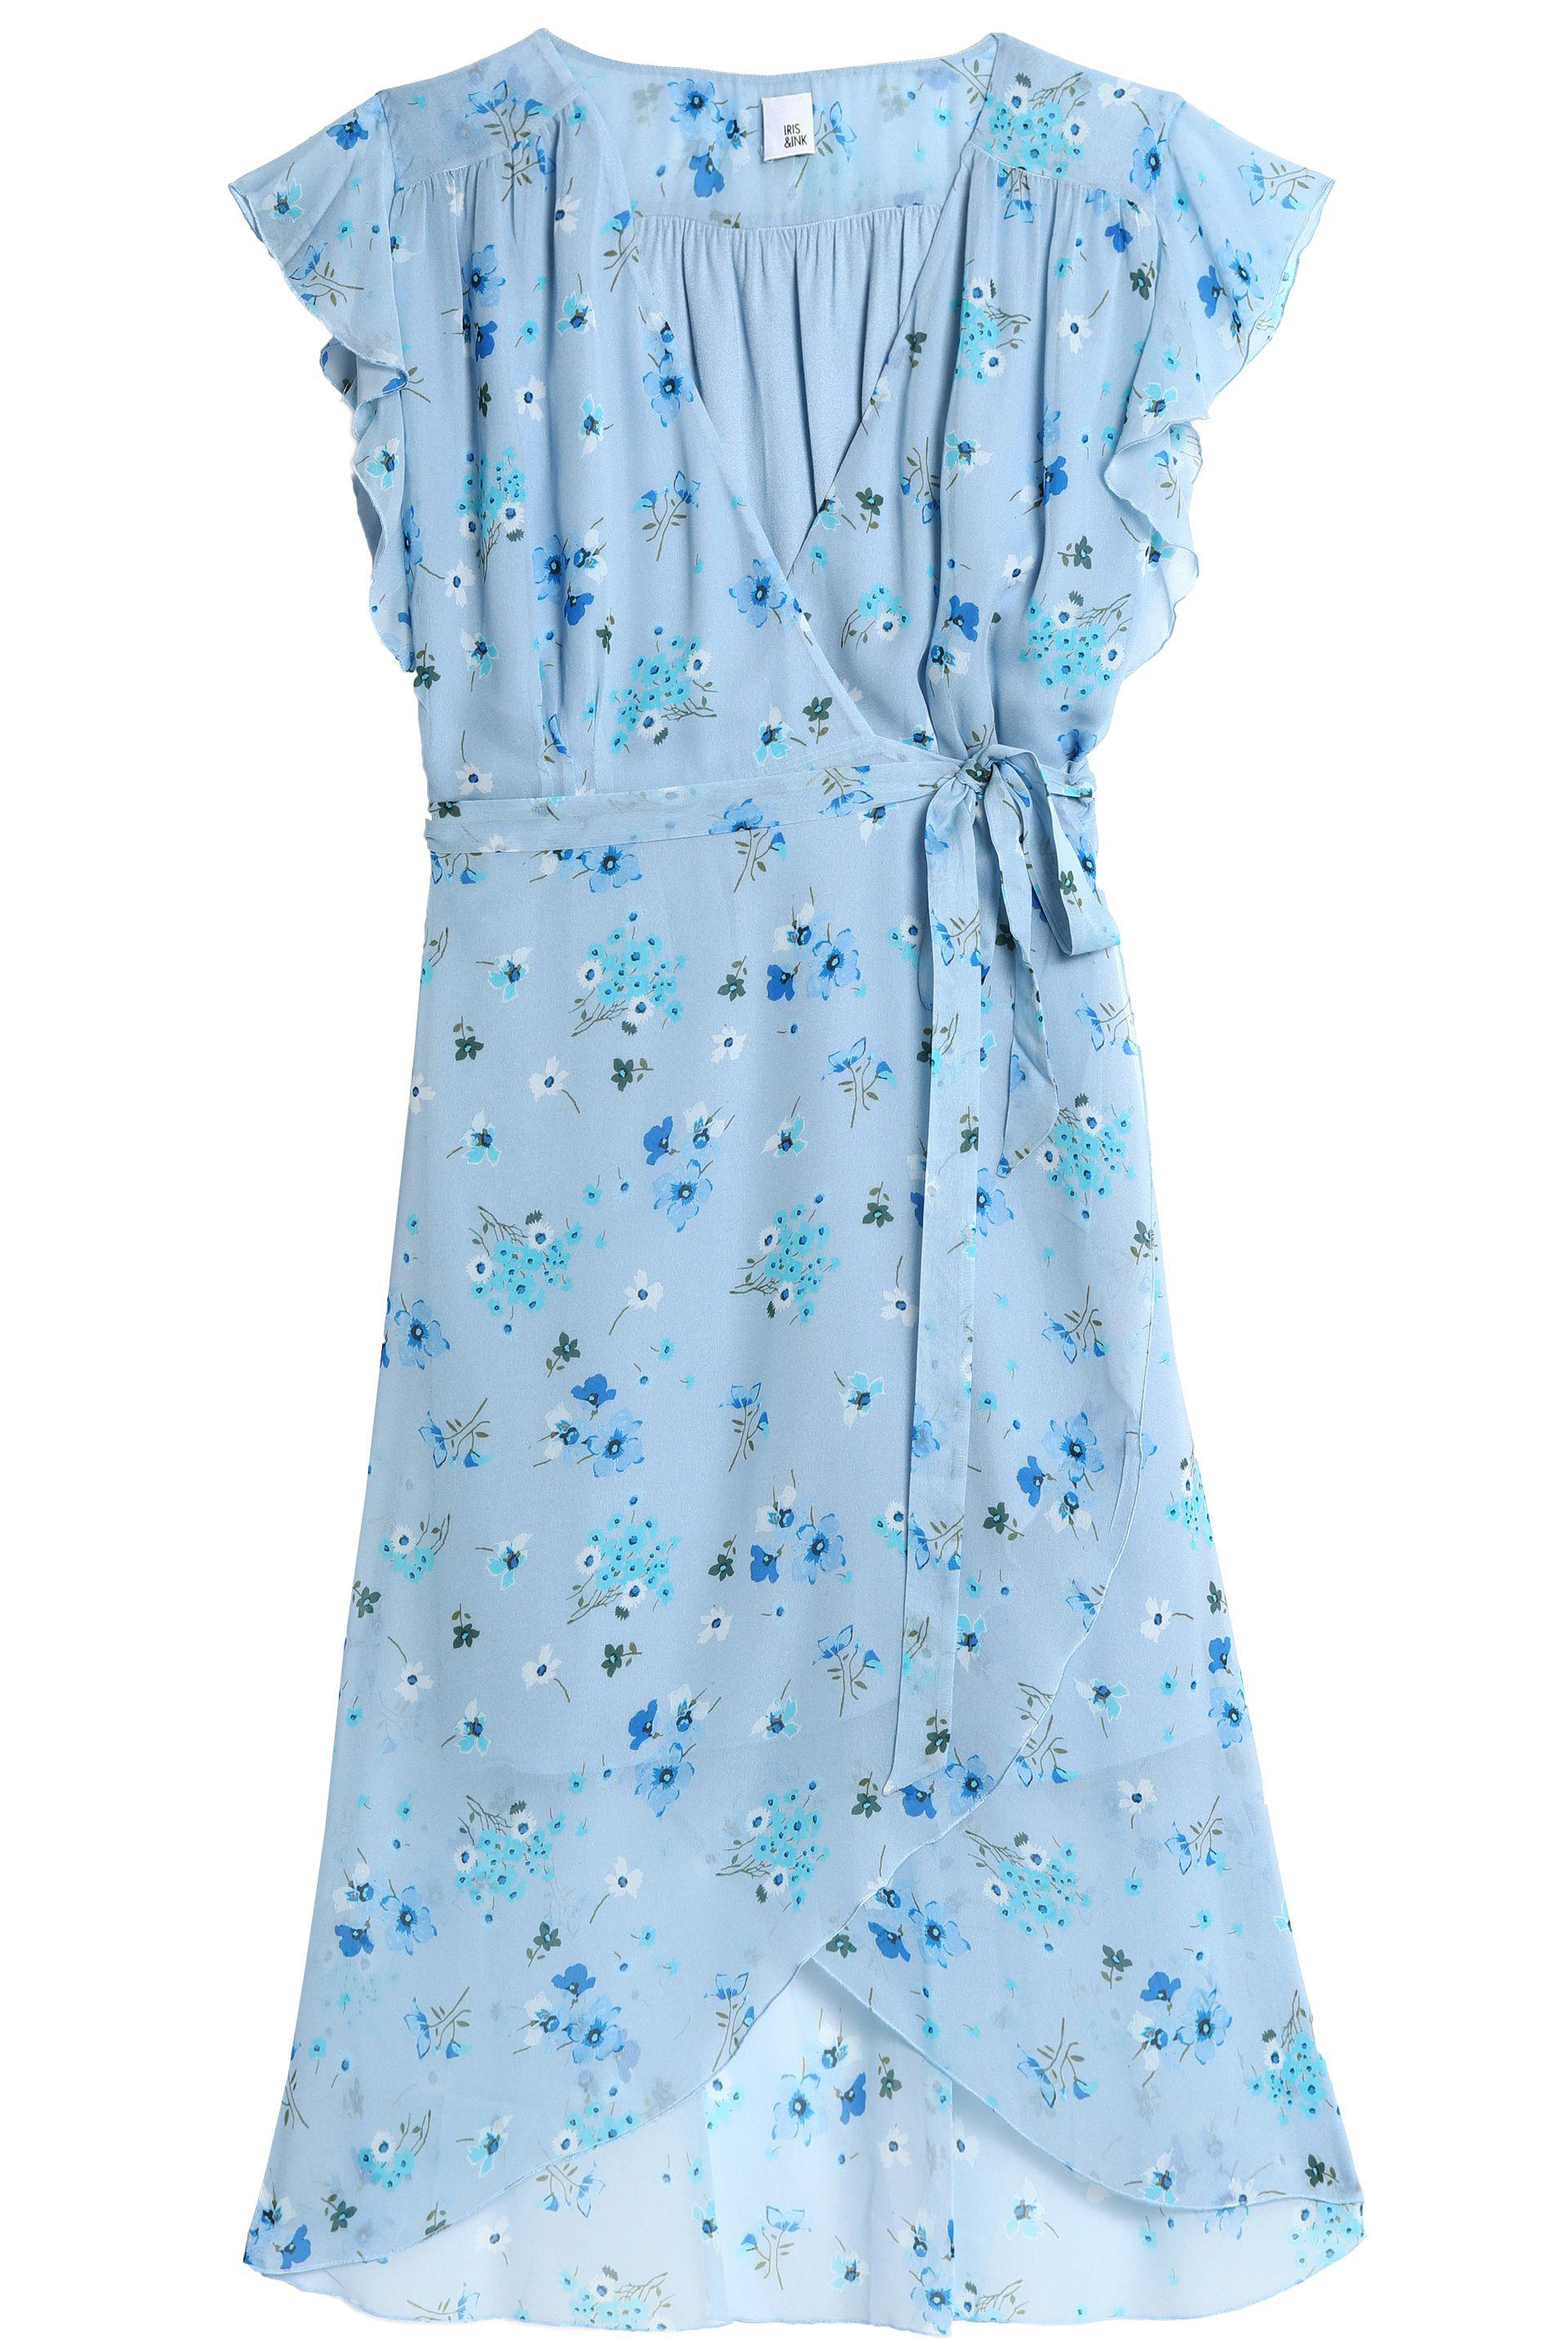 Iris & Ink Woman Moe Wrap-effect Floral-print Chiffon Dress Light Blue Size 4 IRIS & INK Choice For Sale Free Shipping Enjoy OPI2zfo